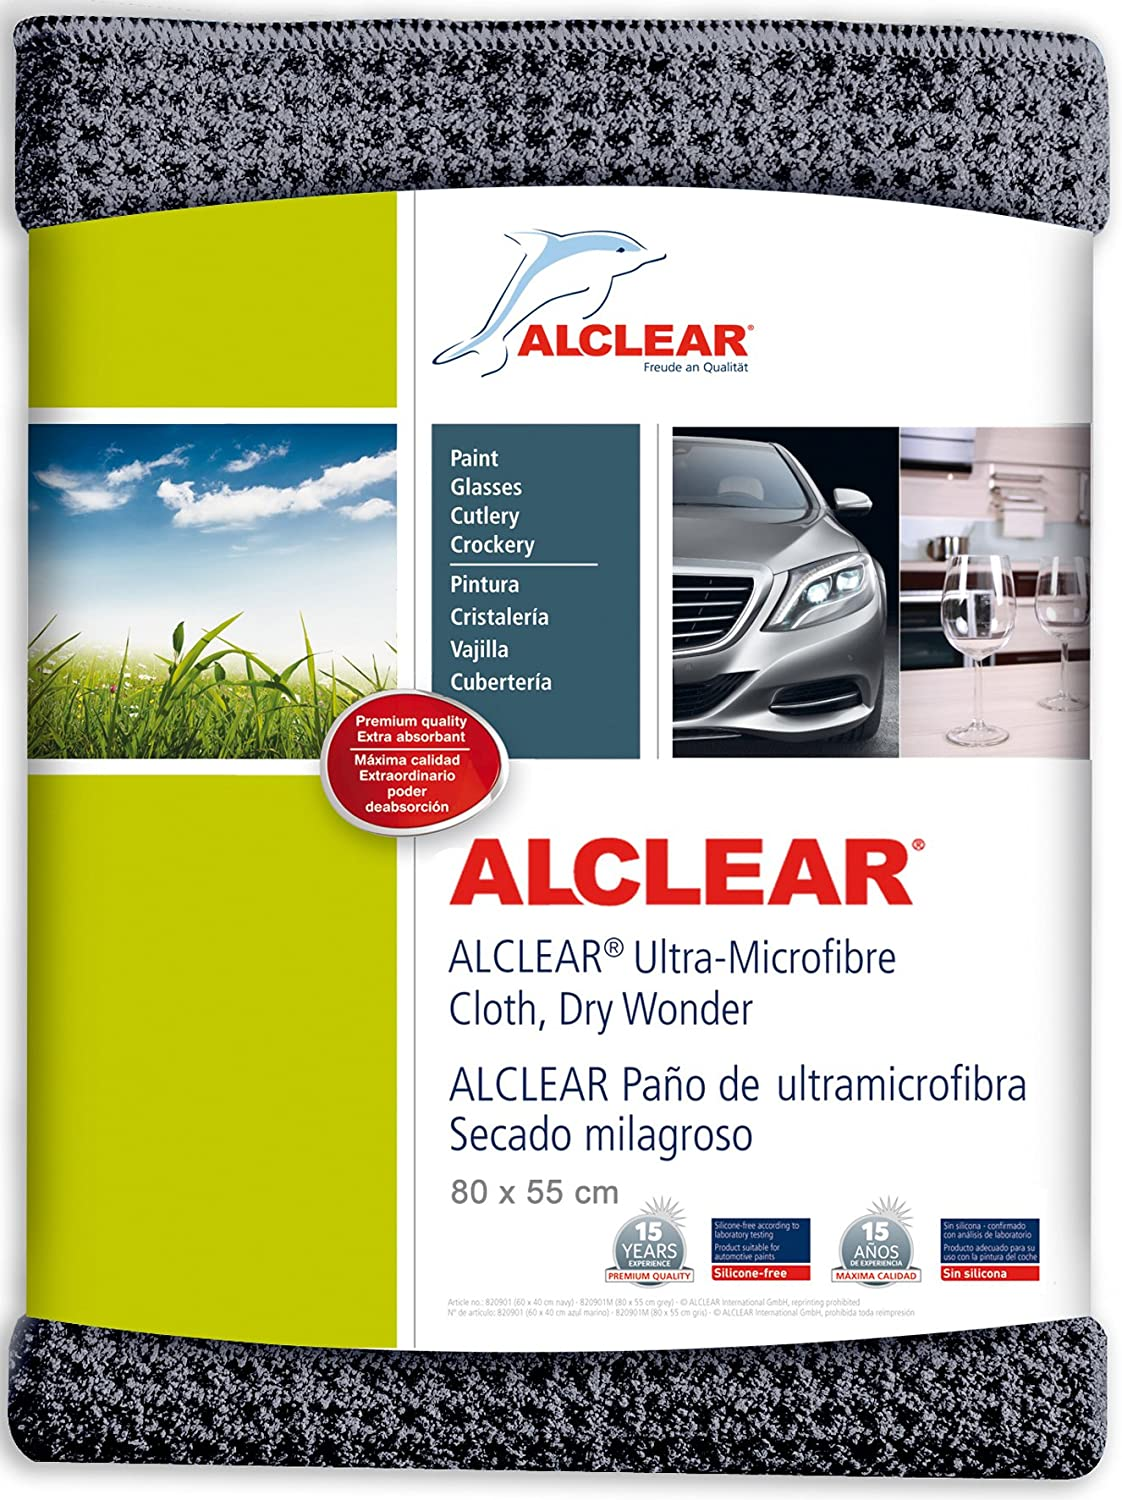 ALCLEAR car microfibre cloth dry miracle for car care, car paint, motorcycle, kitchen and household use - Microfibre tea towel - soft dry cloth - 80x55 cm, Set of 2,  anthracite ALCLEAR International GmbH 820901M_2